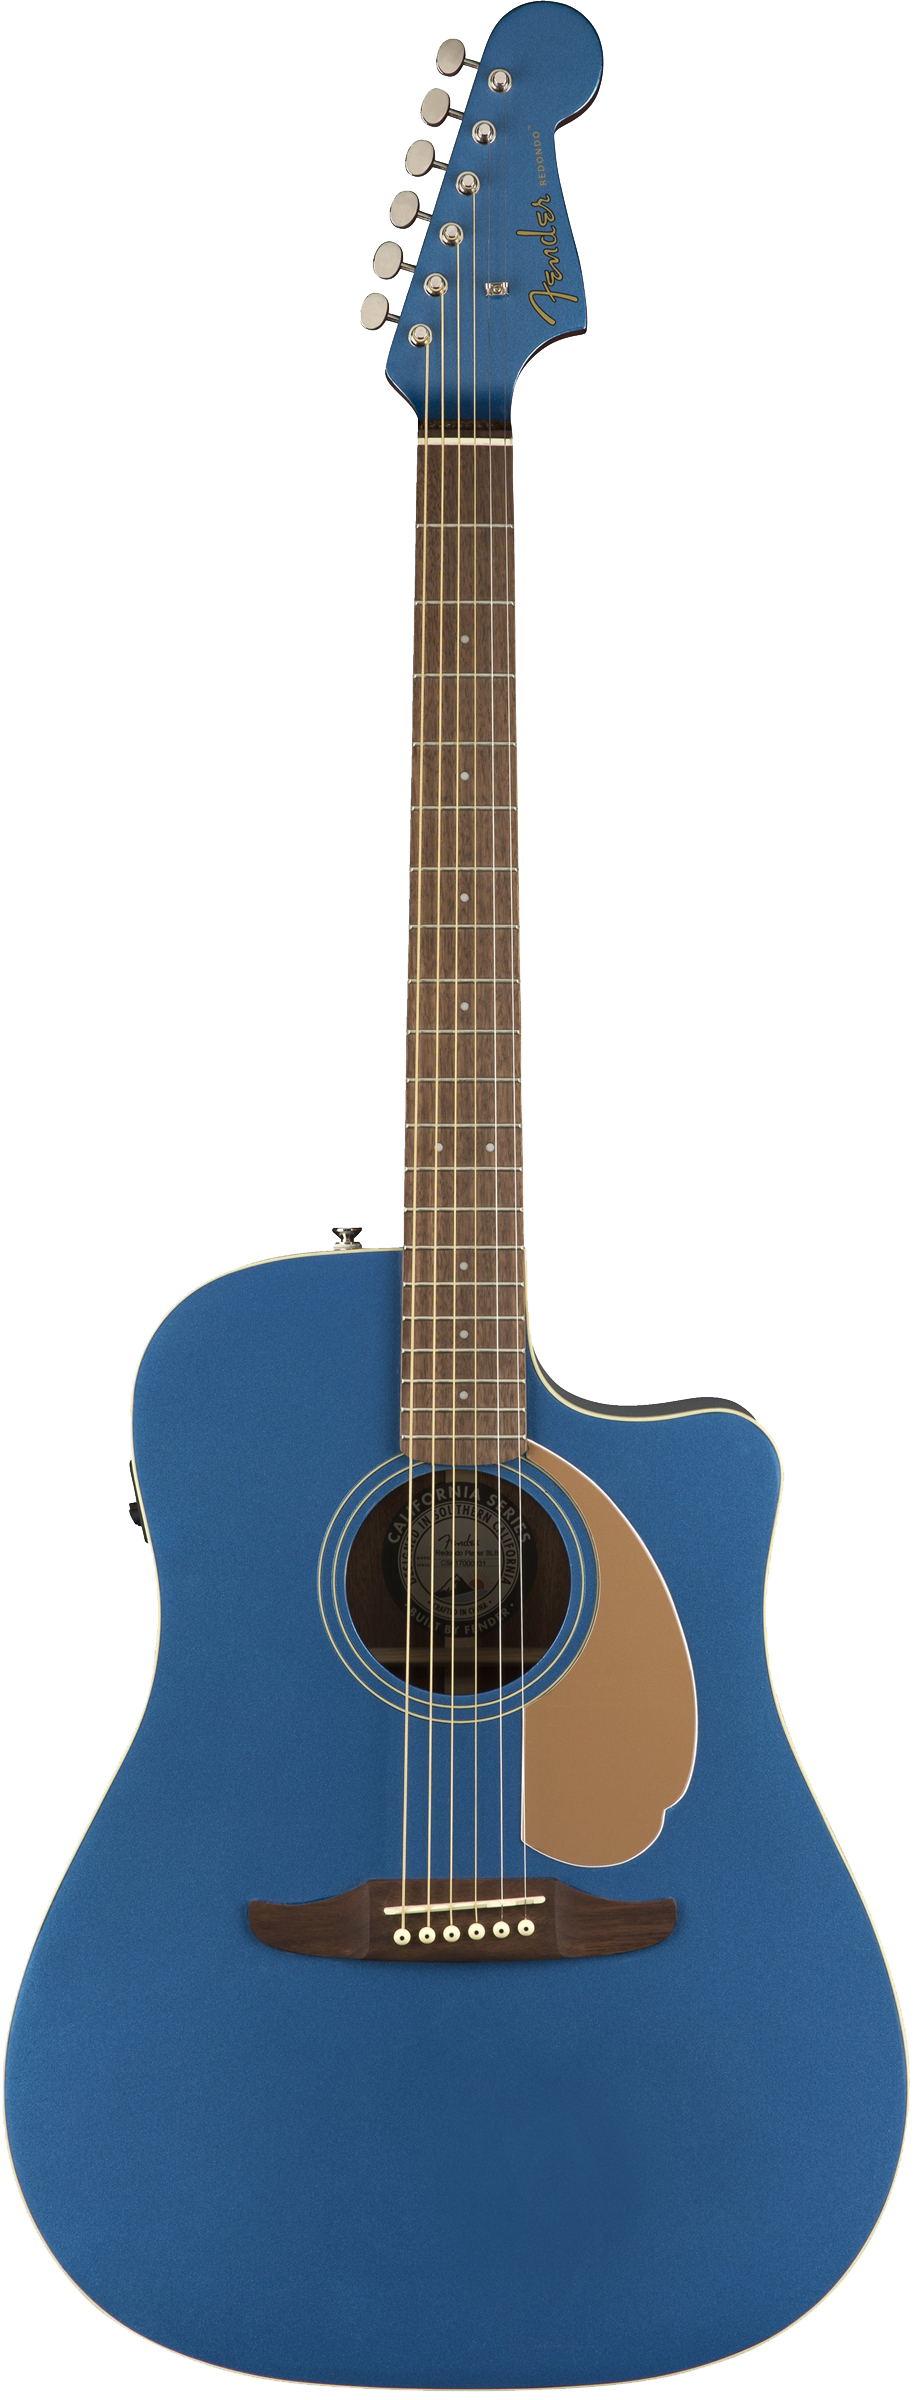 Fender Redondo Player Acoustic / Electric Guitar - Belmont Blue